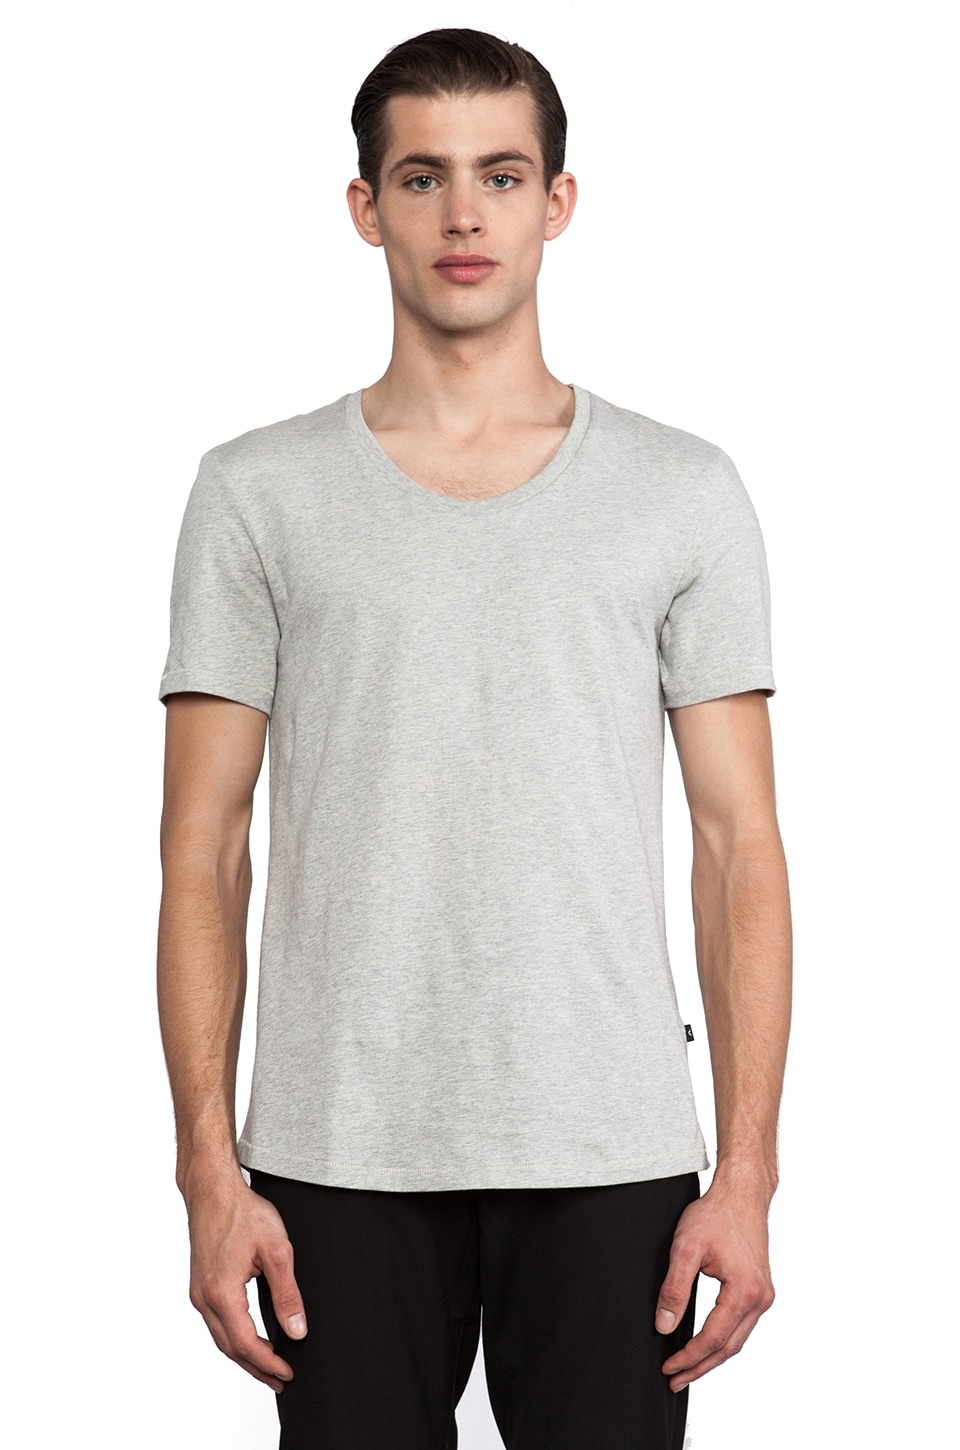 J. Lindeberg Axtell Scoop Jersey Tee in Light Grey Melange